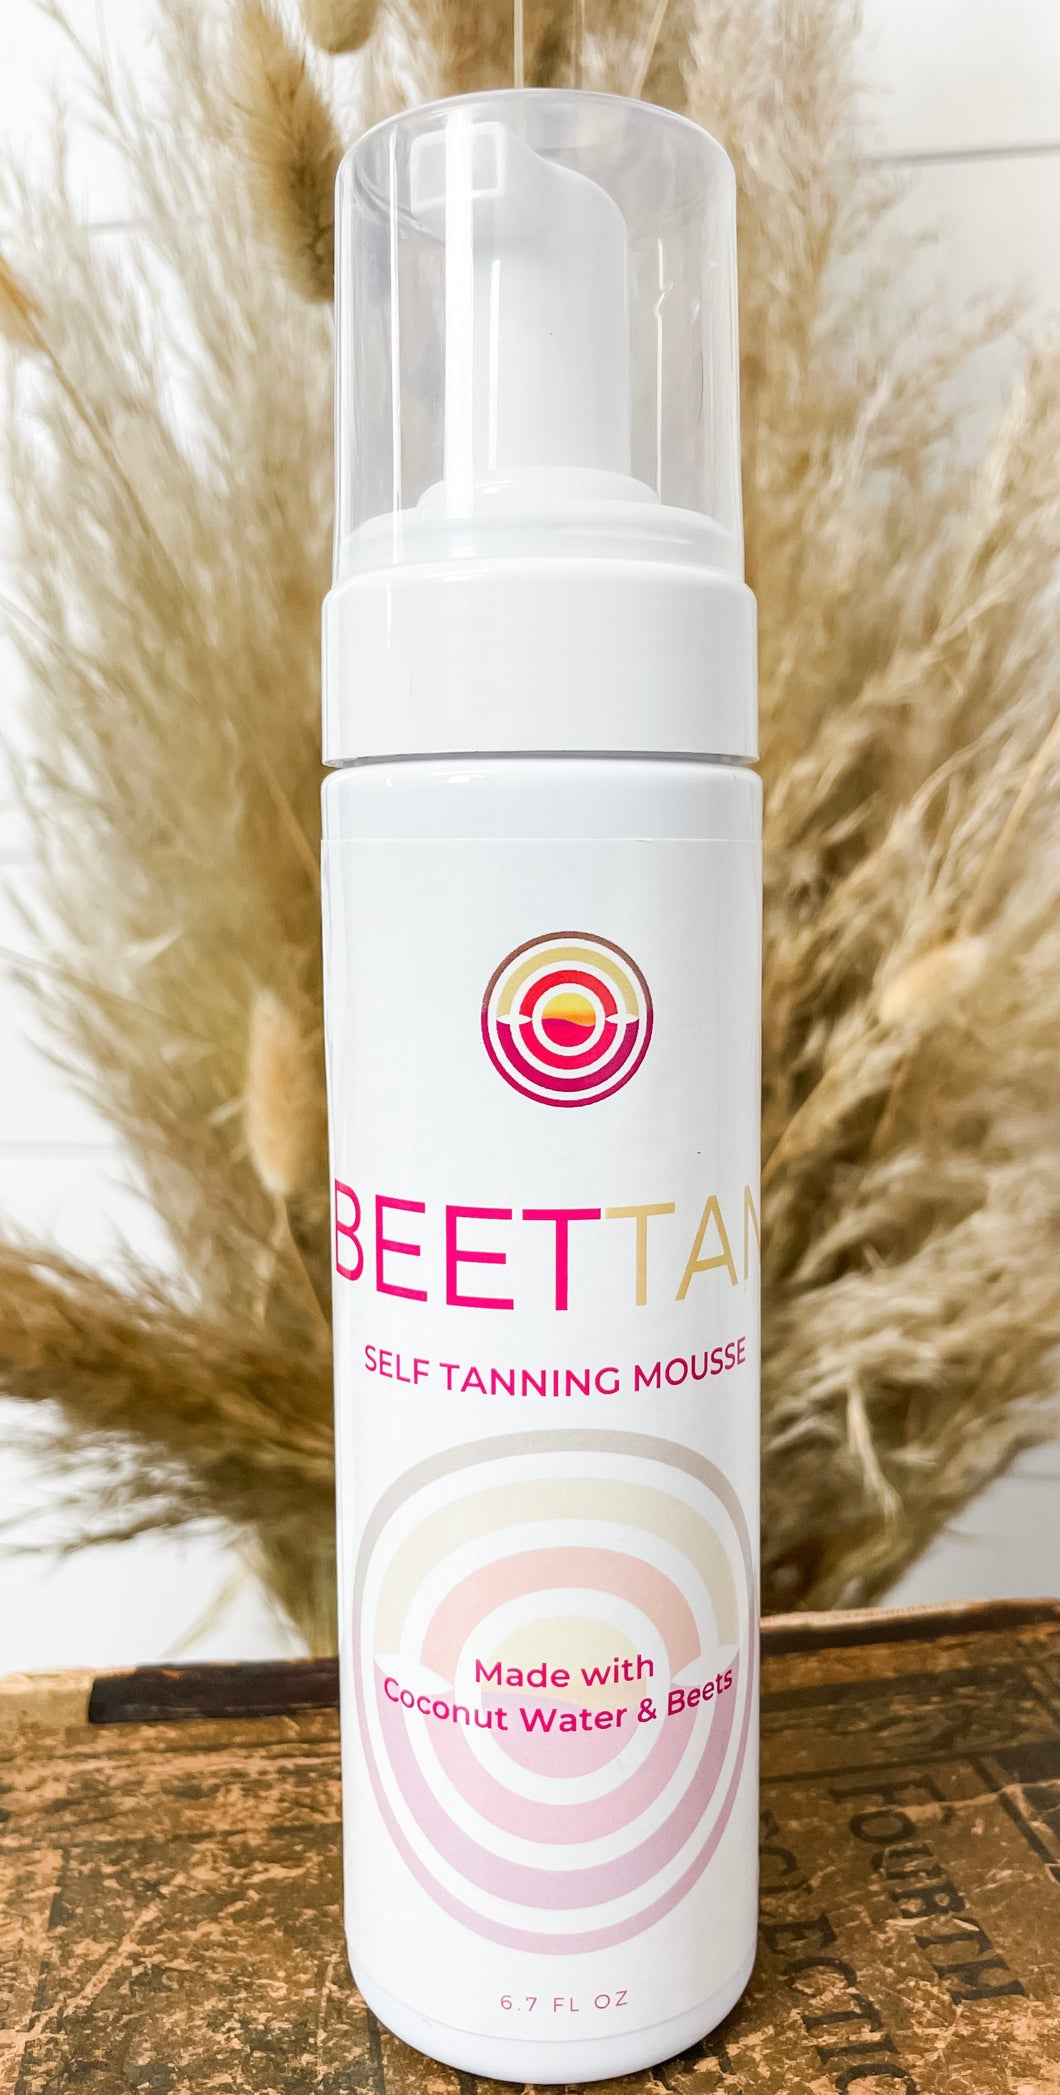 BEETTAN Self Tanning Mousse